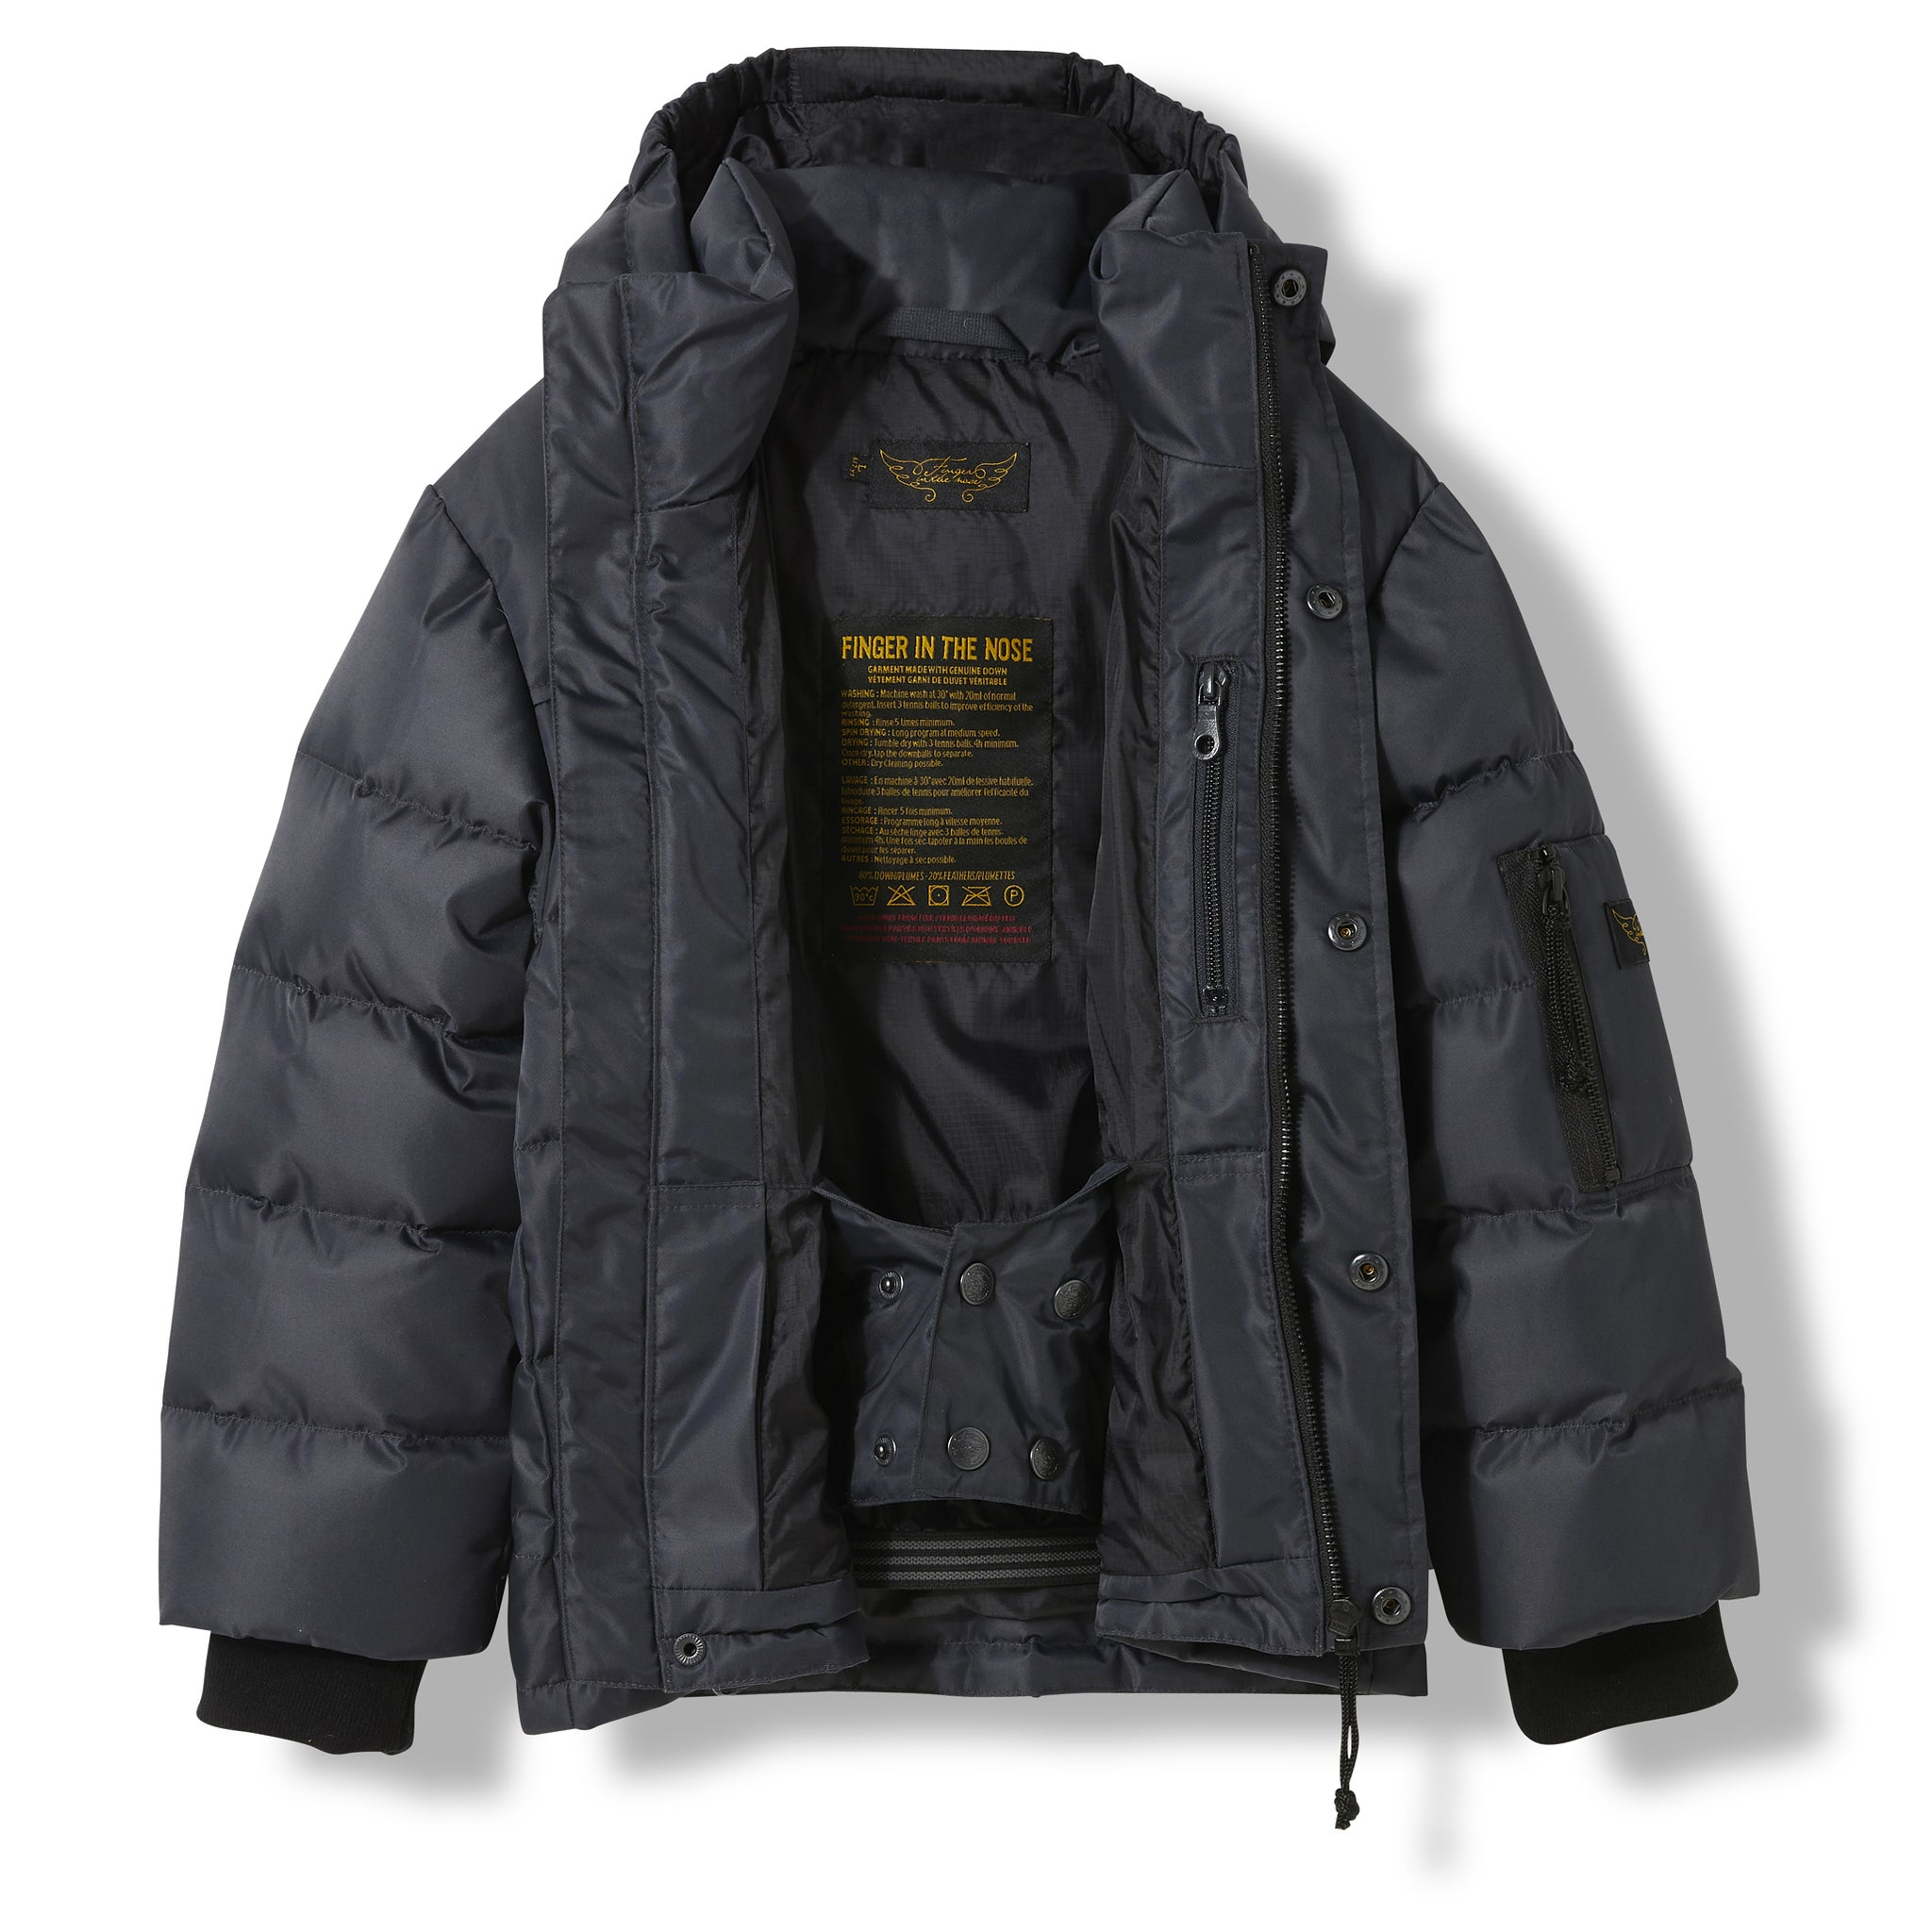 SNOWLYNX Ash Black -  Woven Down Jacket 3